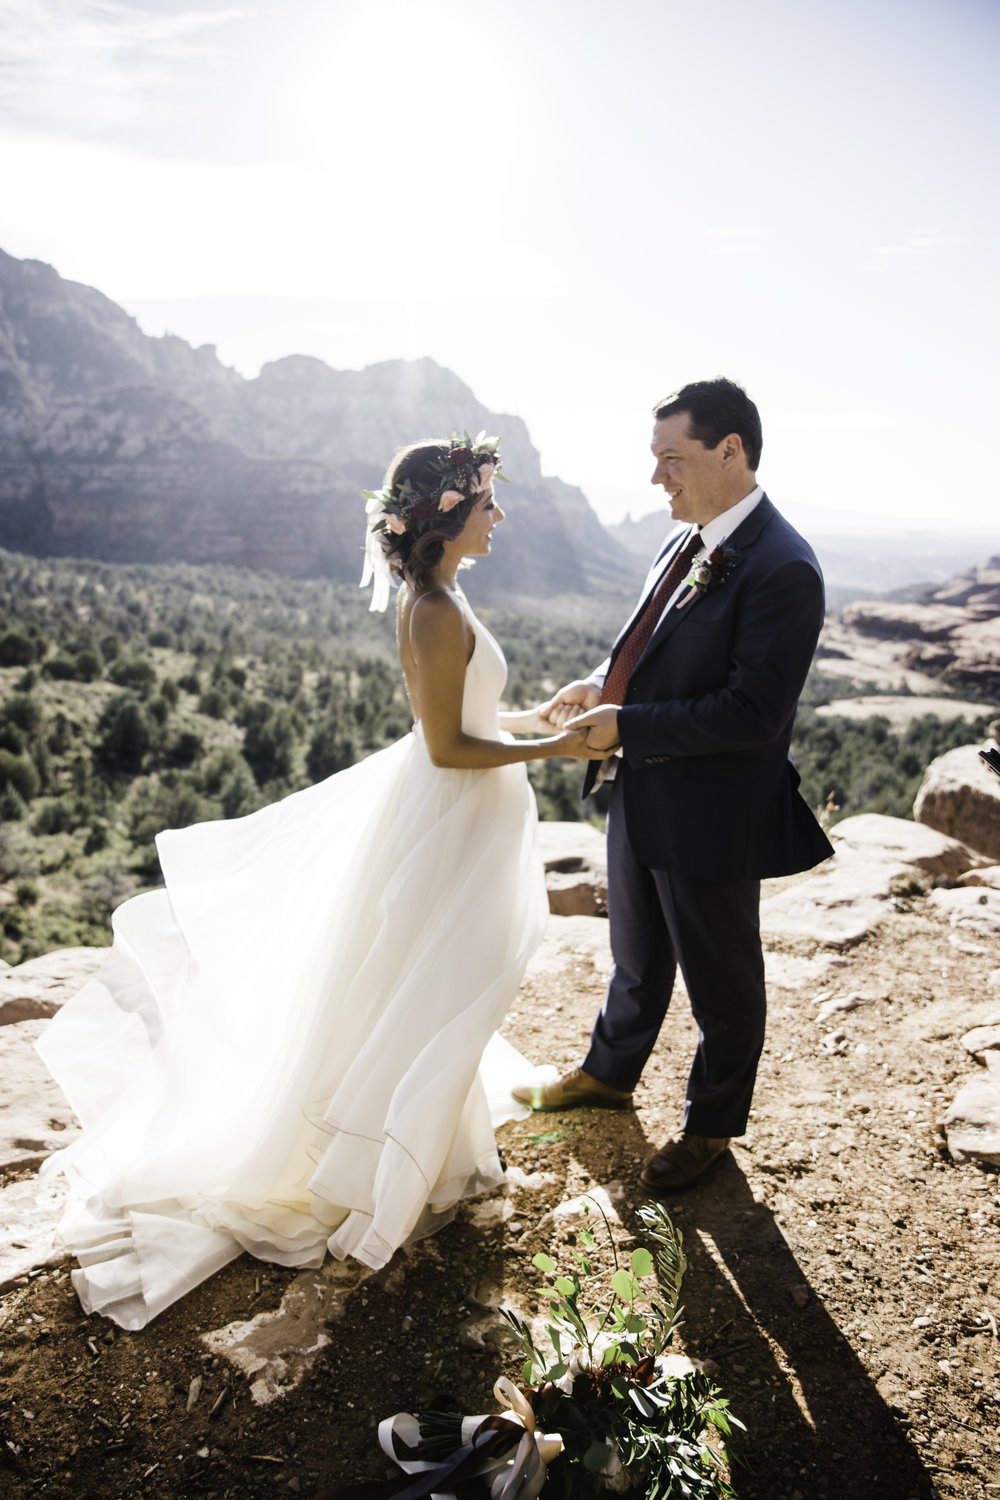 LOVELY BRIDE FEATURE// SEDONA, Arizona //ADVENTURE ELOPEMENT - Christine & Paul's elopement at Merry-Go-Round-Rock in Sedona, AZ that allen and I captured, caught the attention of Lovely Bride - one of the top wedding gown boutiques in the country. We're so honored they wanted to publish and feature this intimate, adventurous elopement we captured and help coordinate. But how could they not? This gorgeous bride was in one of the most breathtaking locations in the Southwest. More coming soon to our blog - but in the meantime, check out more on this adventurous love story below!